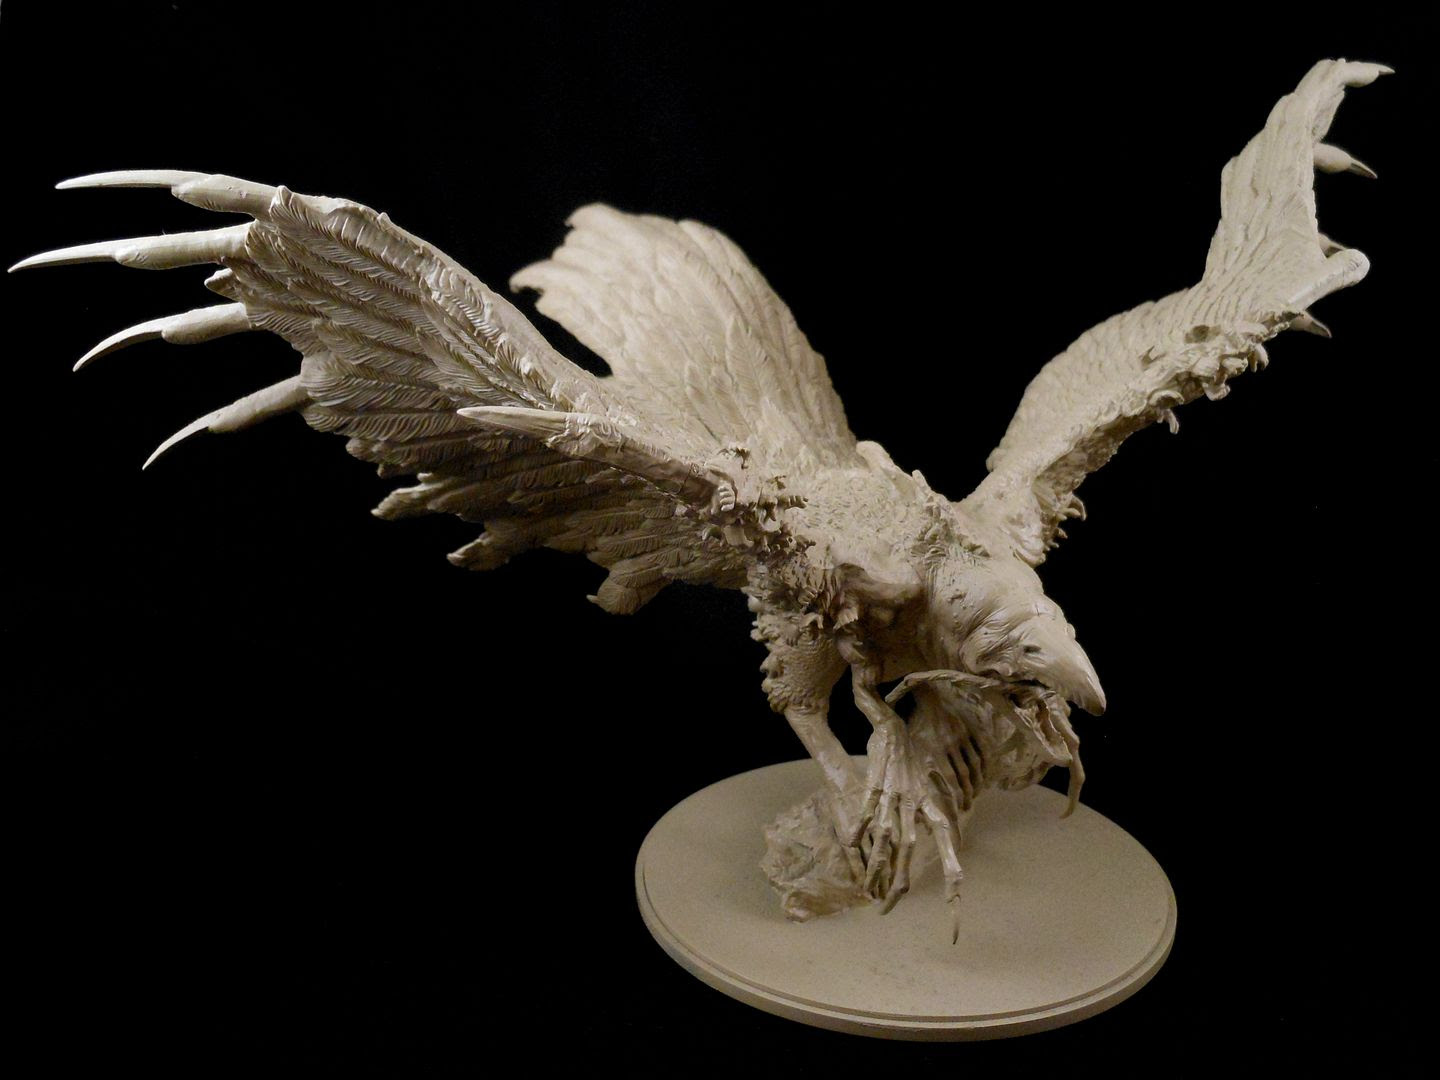 The phoenix from Kingdom Death: Monster, primed with skeleton bone.